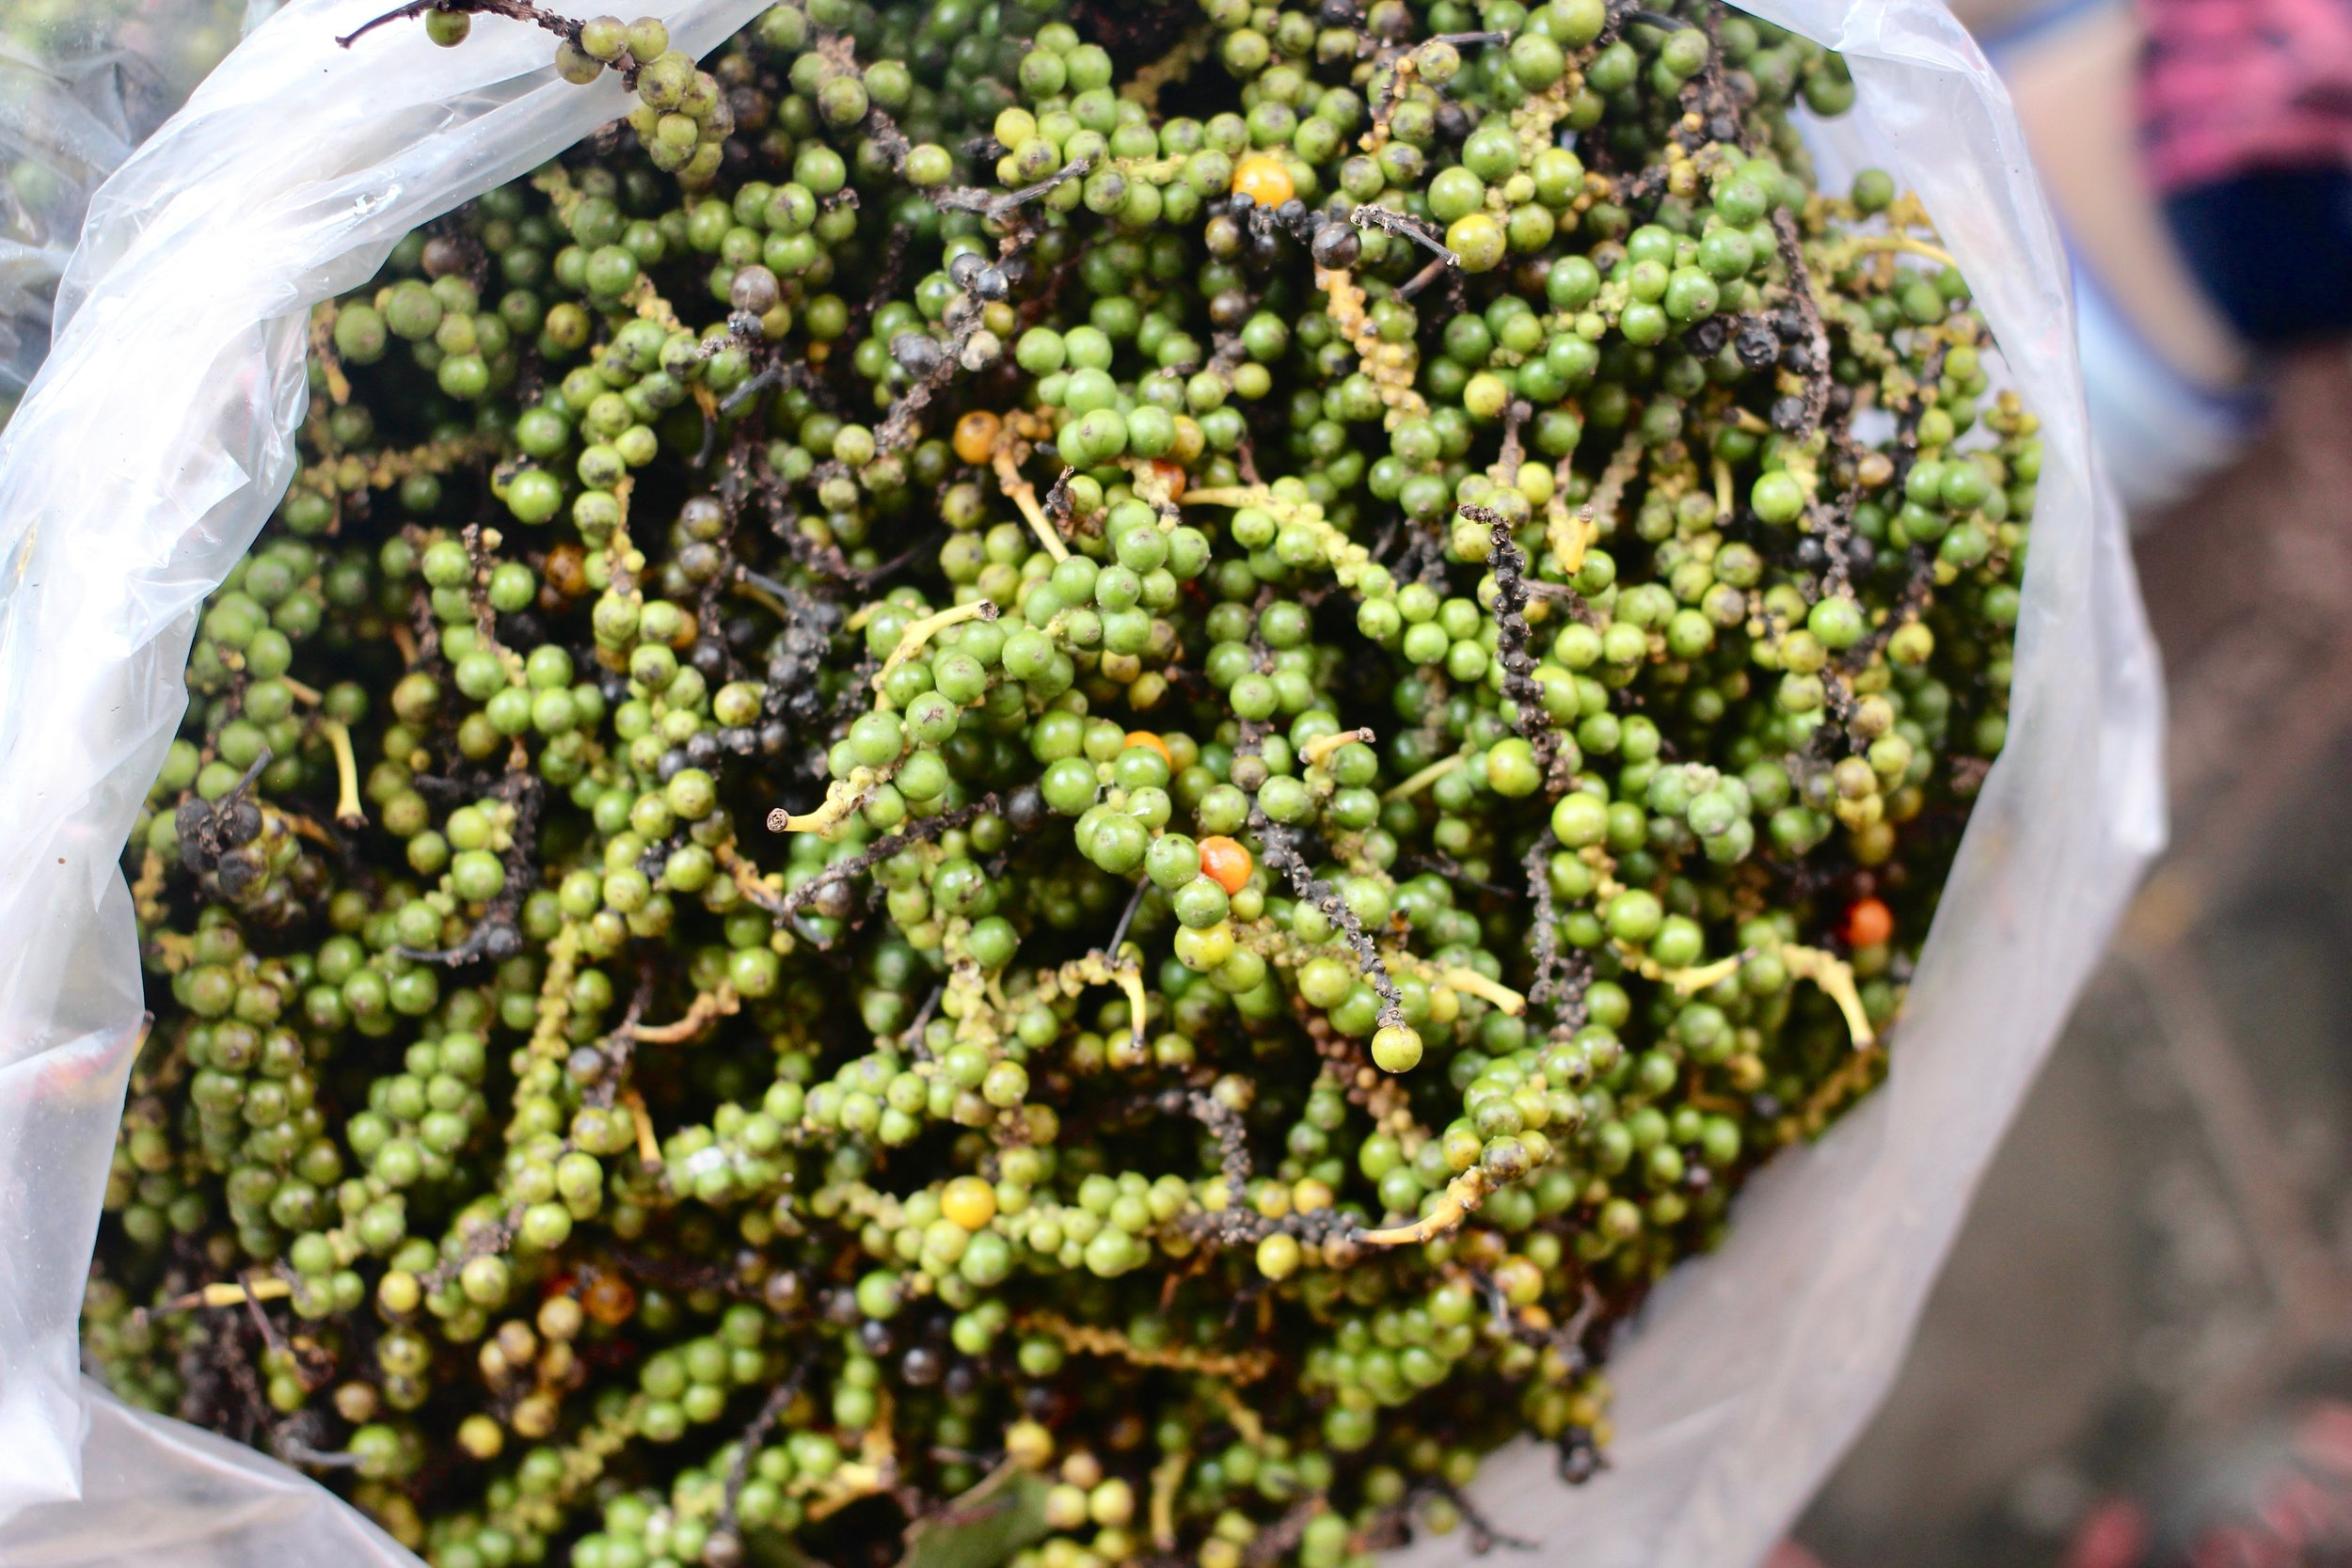 Fresh Kampot pepper to add some mouth-watering Anthony Bourdain-approved flavor to the crab mix